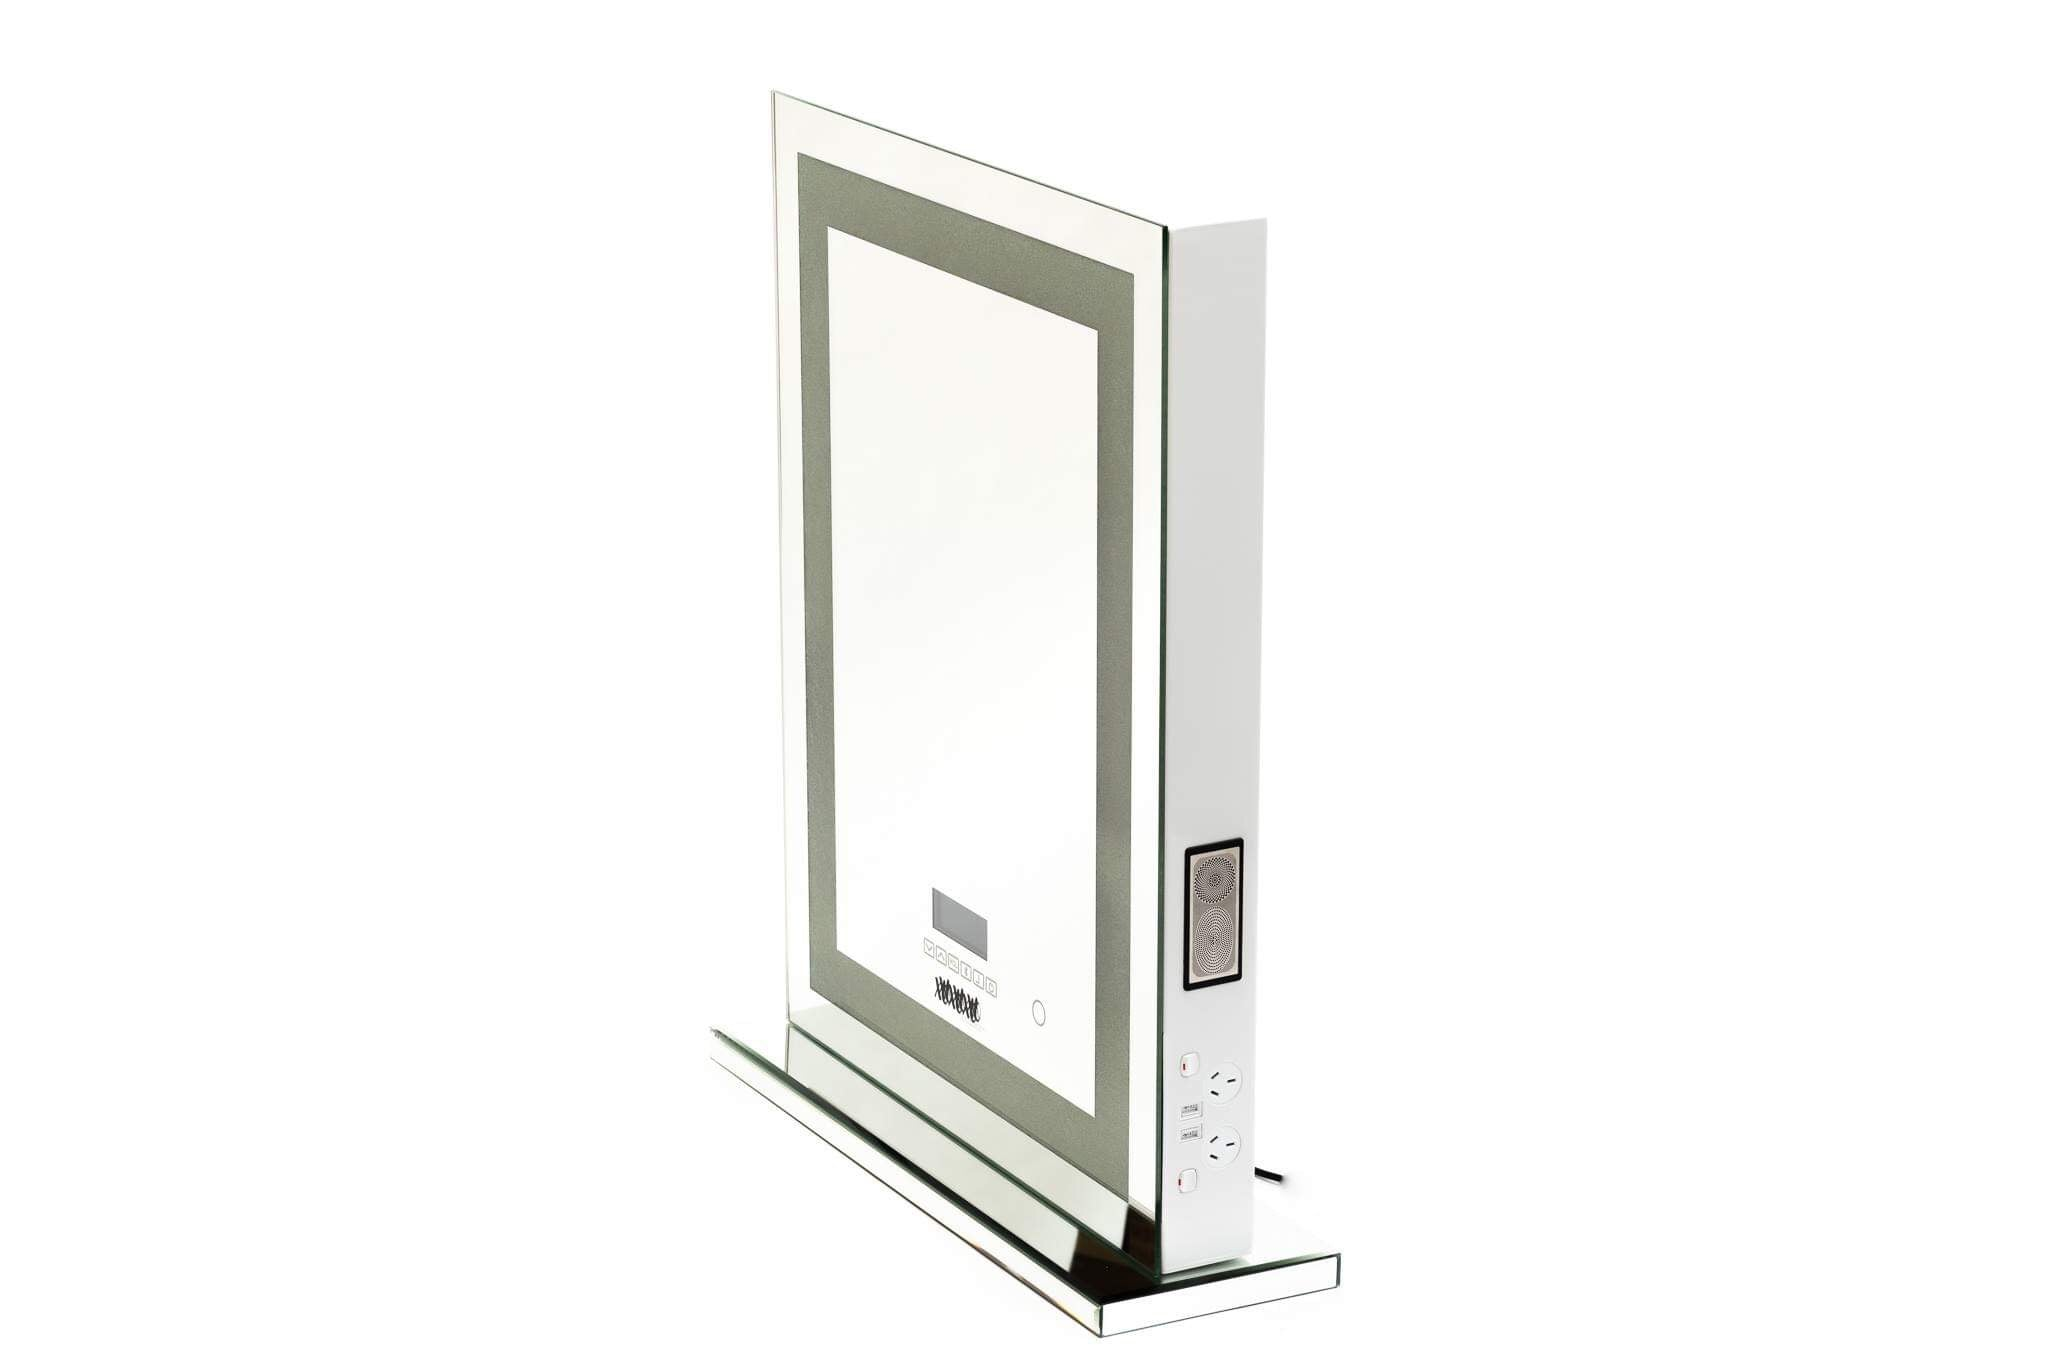 Makeup Mirror XL Tall with  Tri -temperature (cool, neutral and warm lights) -WITH PREMIUM BLUETOOTH -SAME DAY SHIPPING LIMITED STOCK